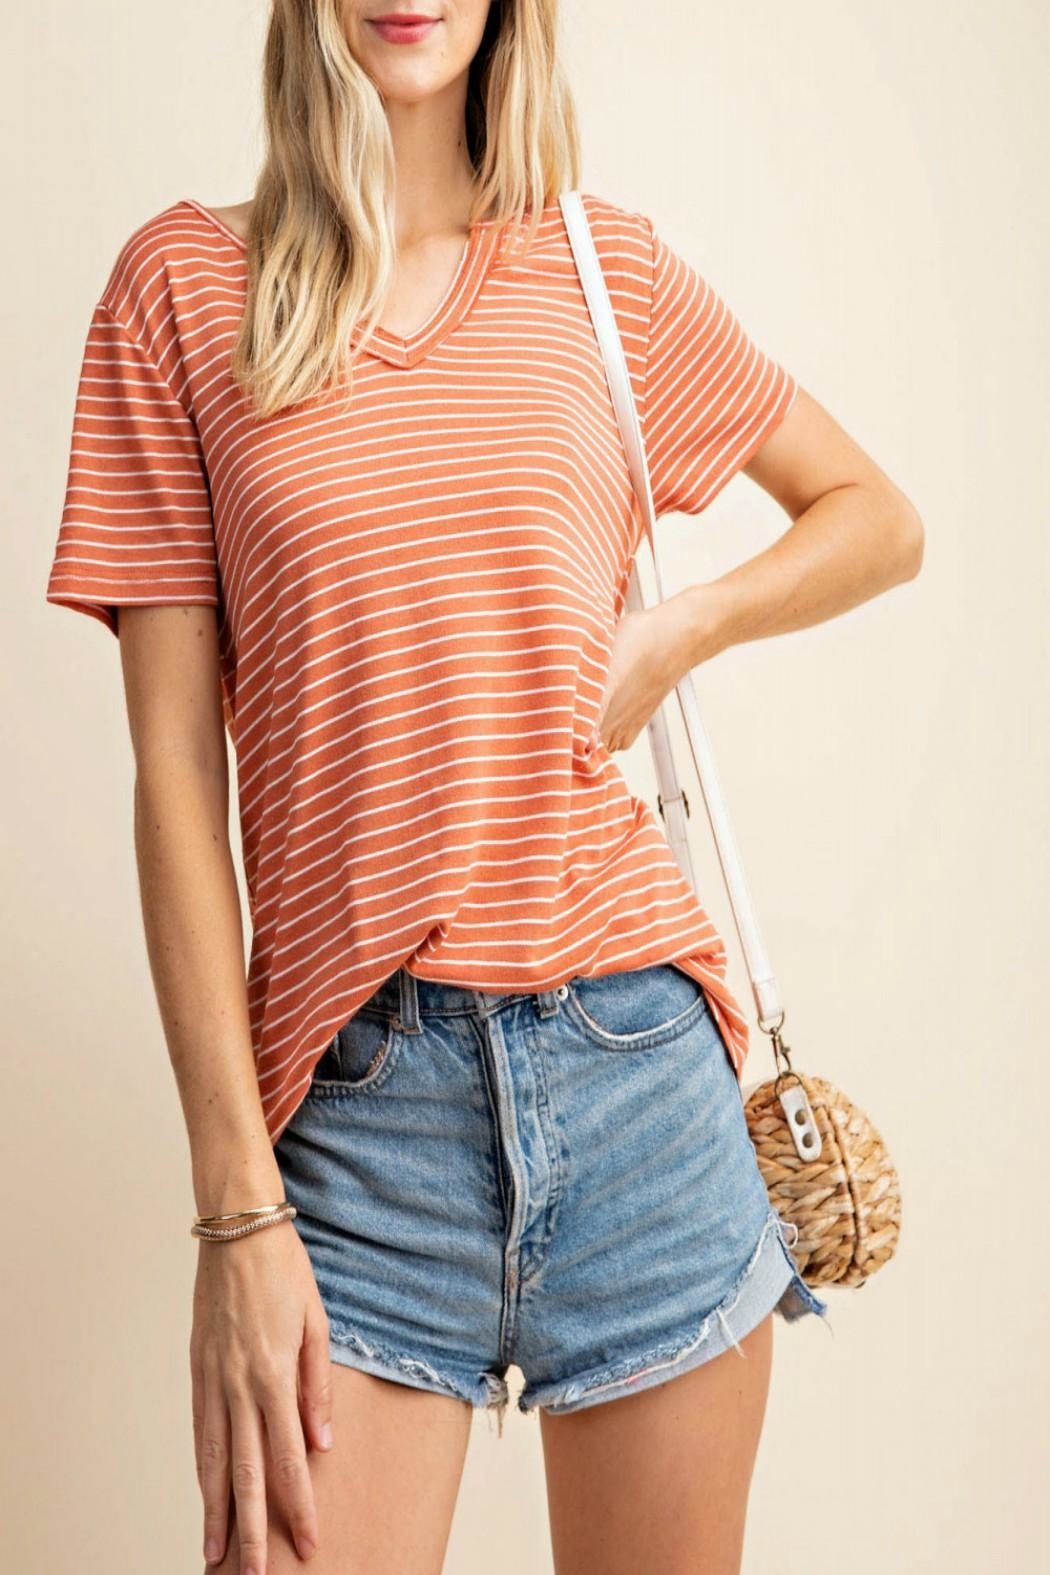 KORI AMERICA V-Neck Striped Top - Main Image